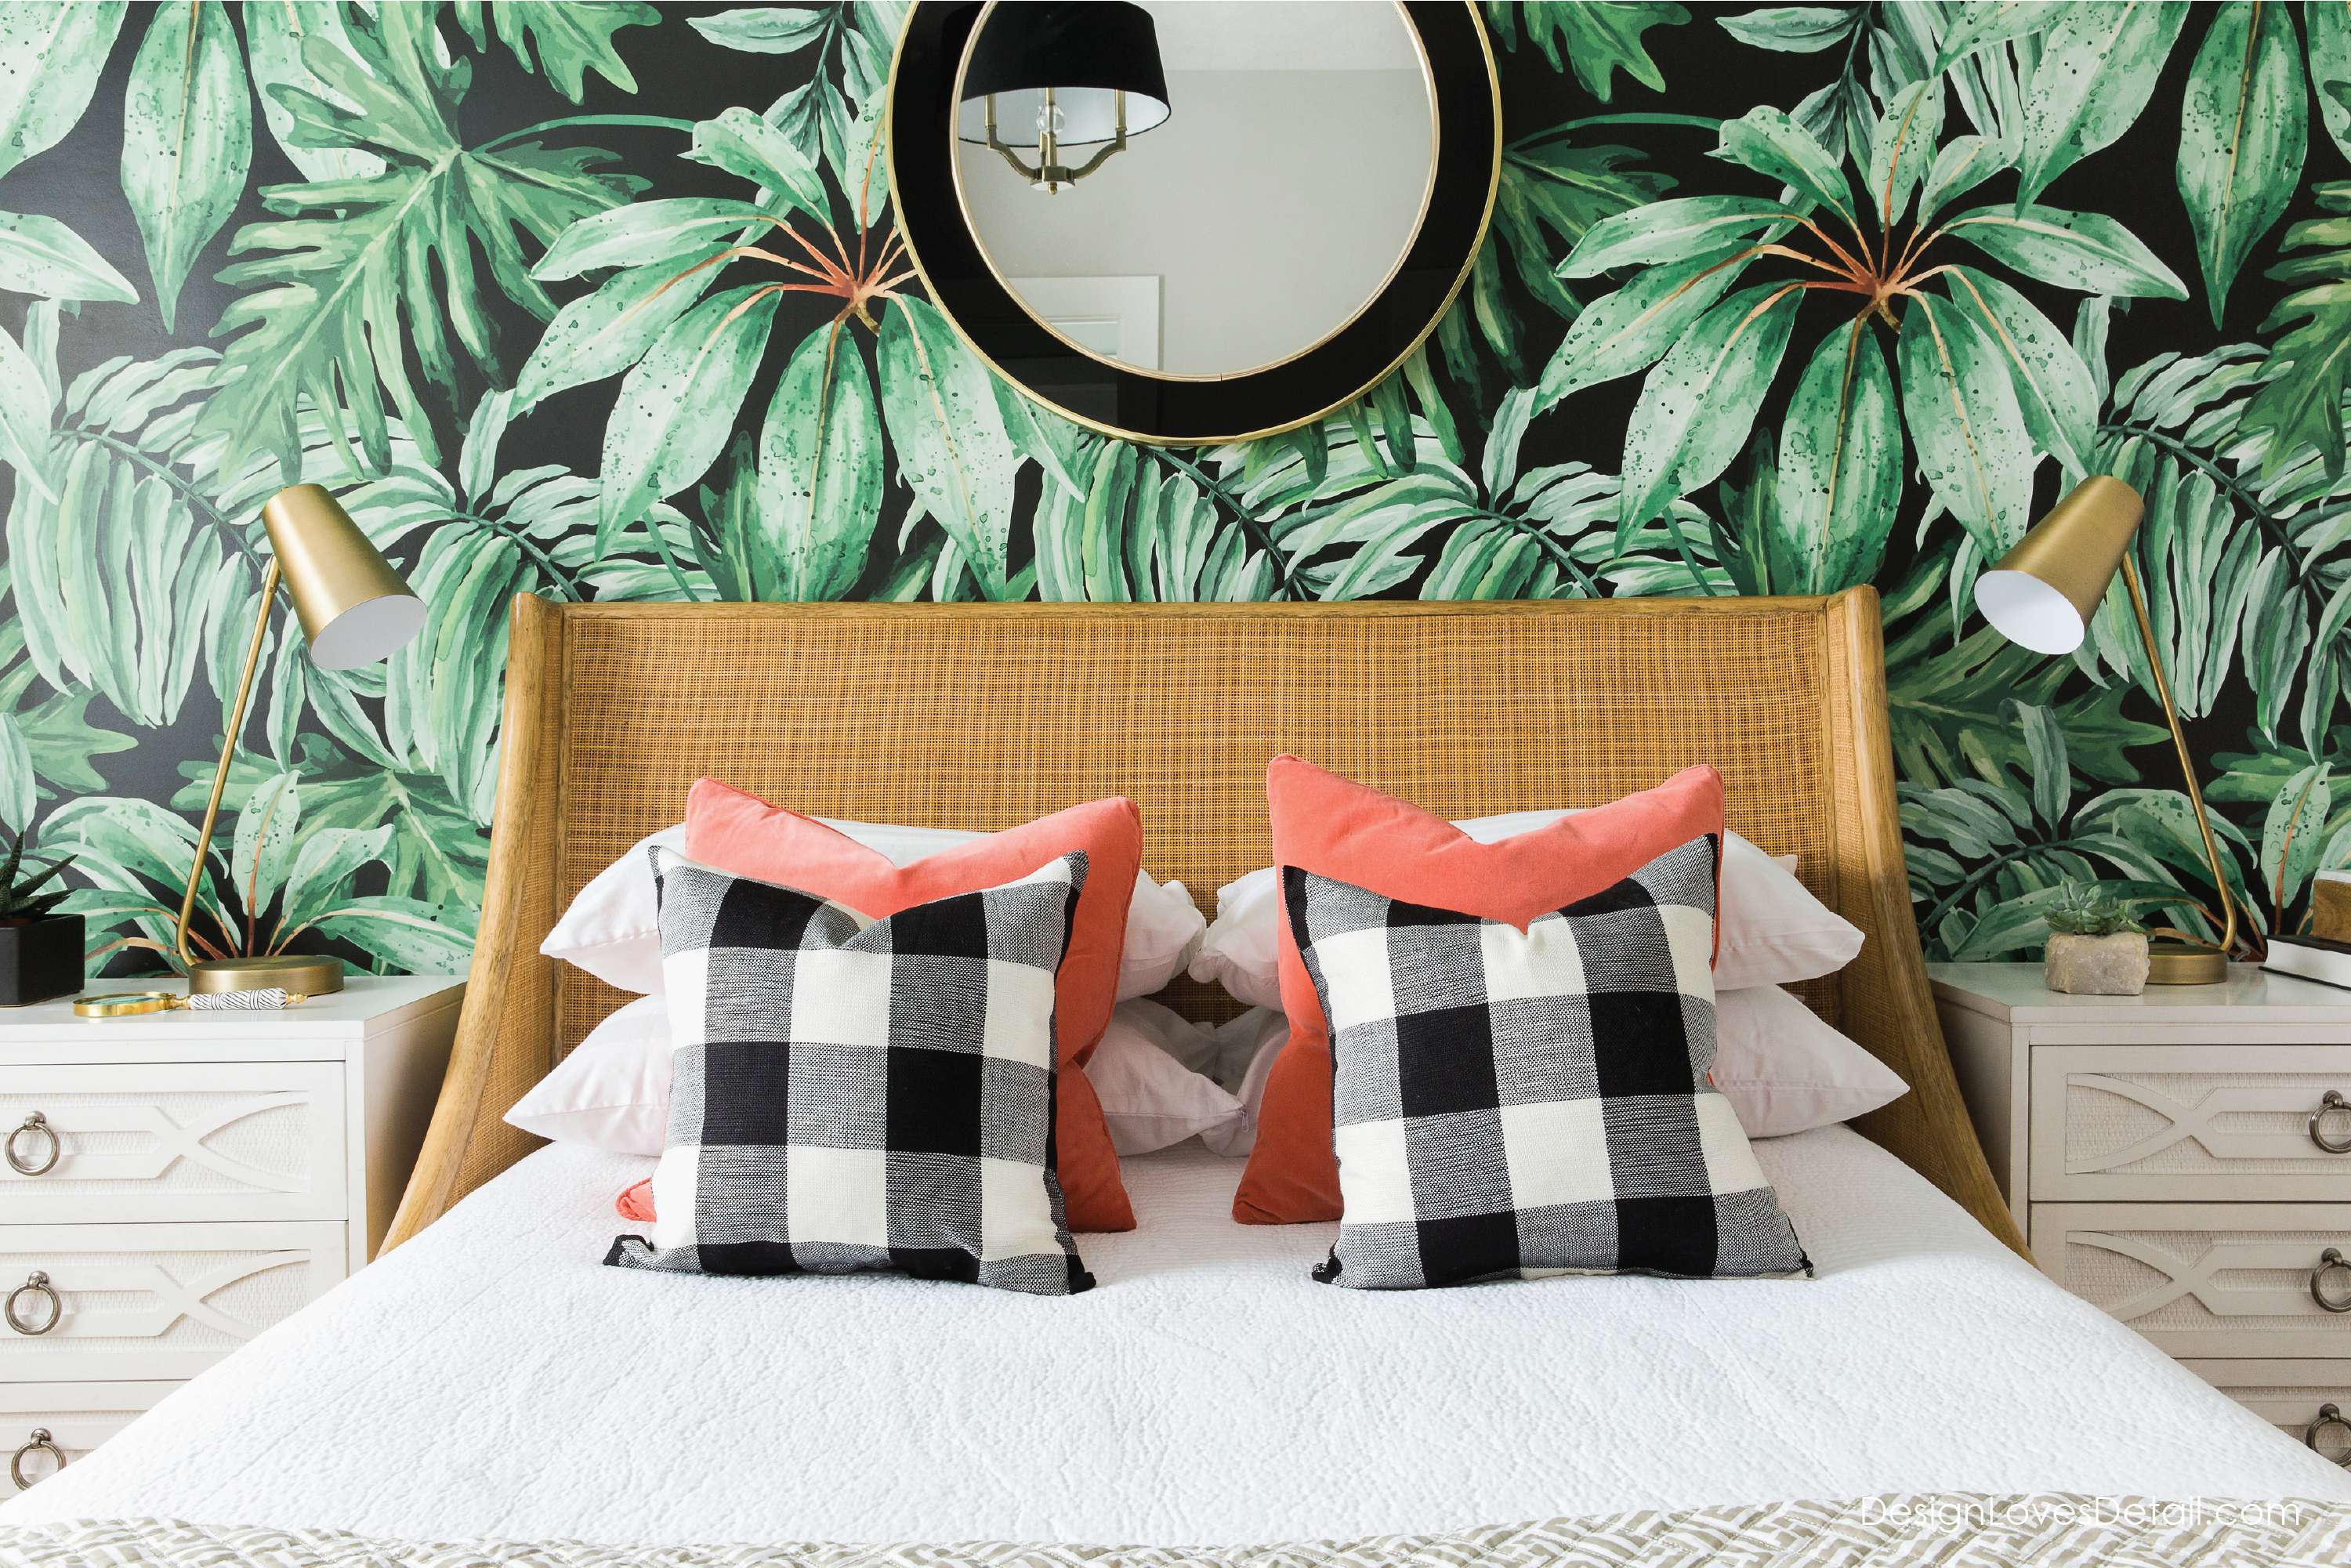 The coolest guest bedroom ever! Love that tropical palm leaf wallpaper!!